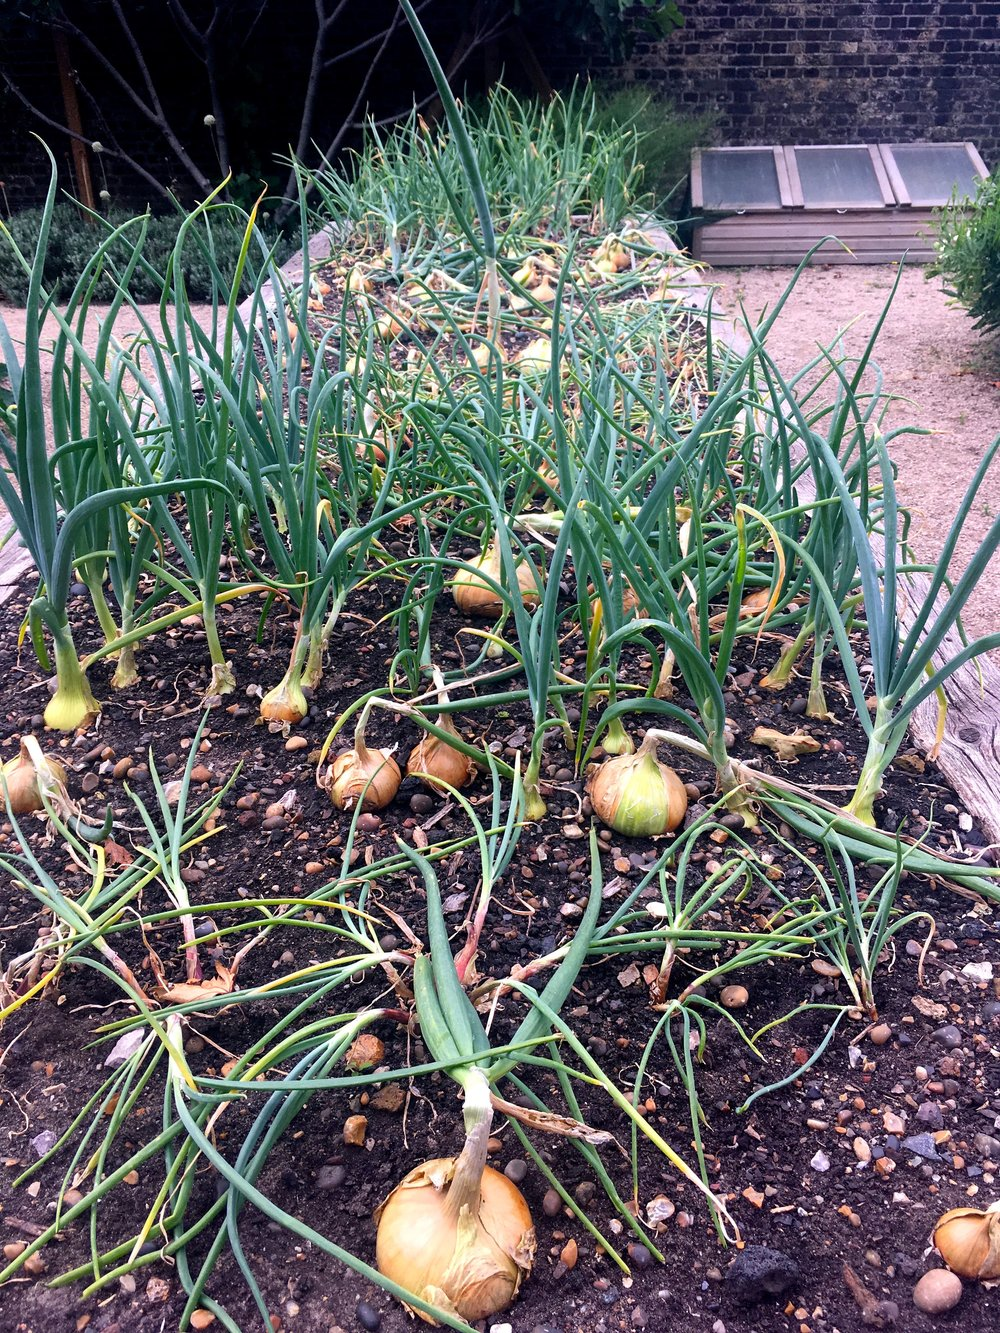 Someone's had more onion success than me